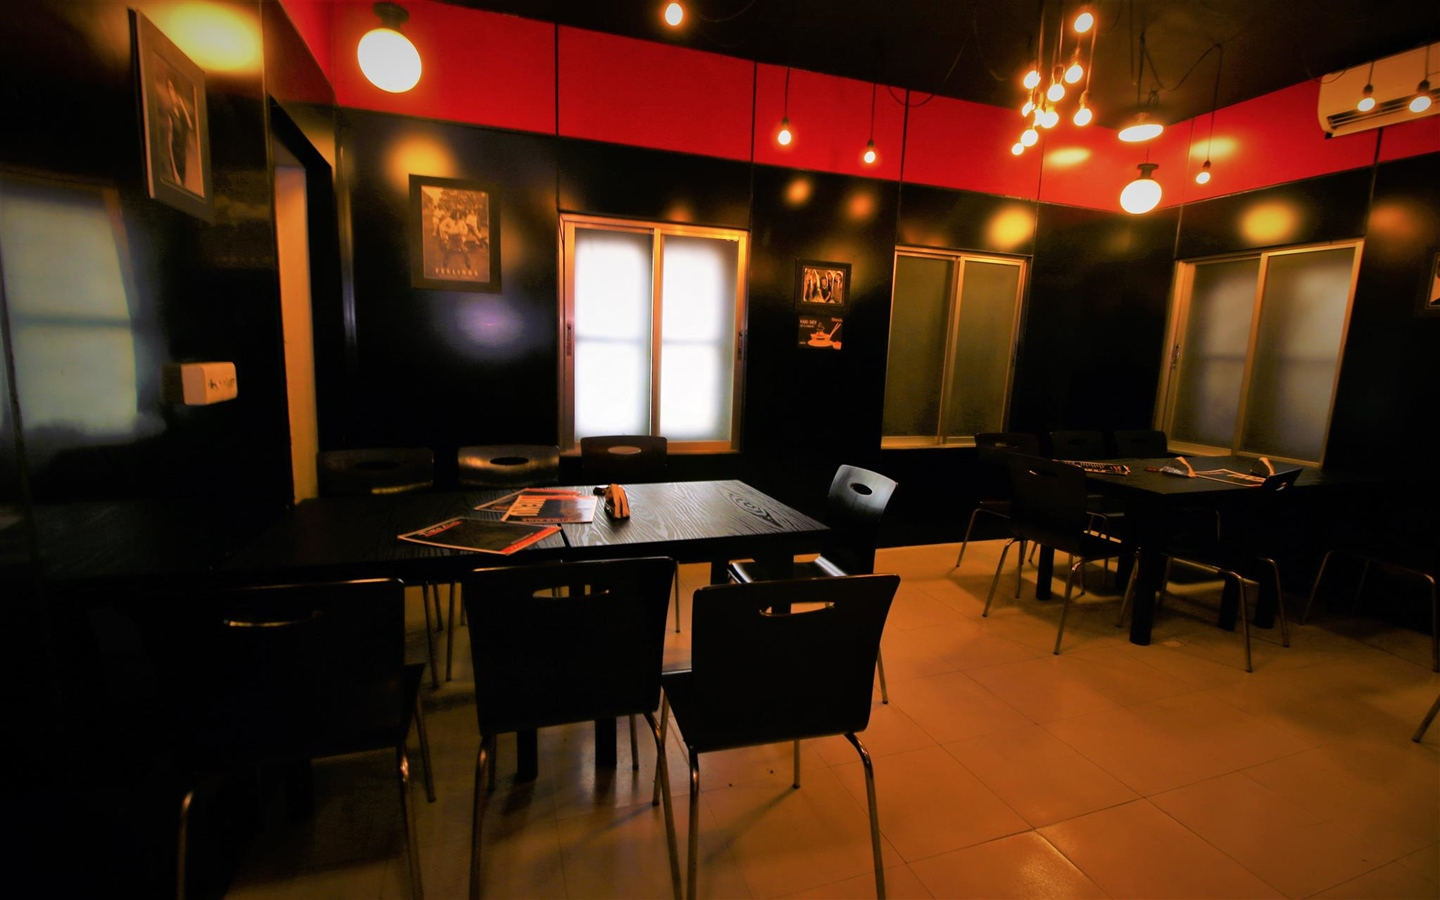 Time Out - hangout restaurants in Banani